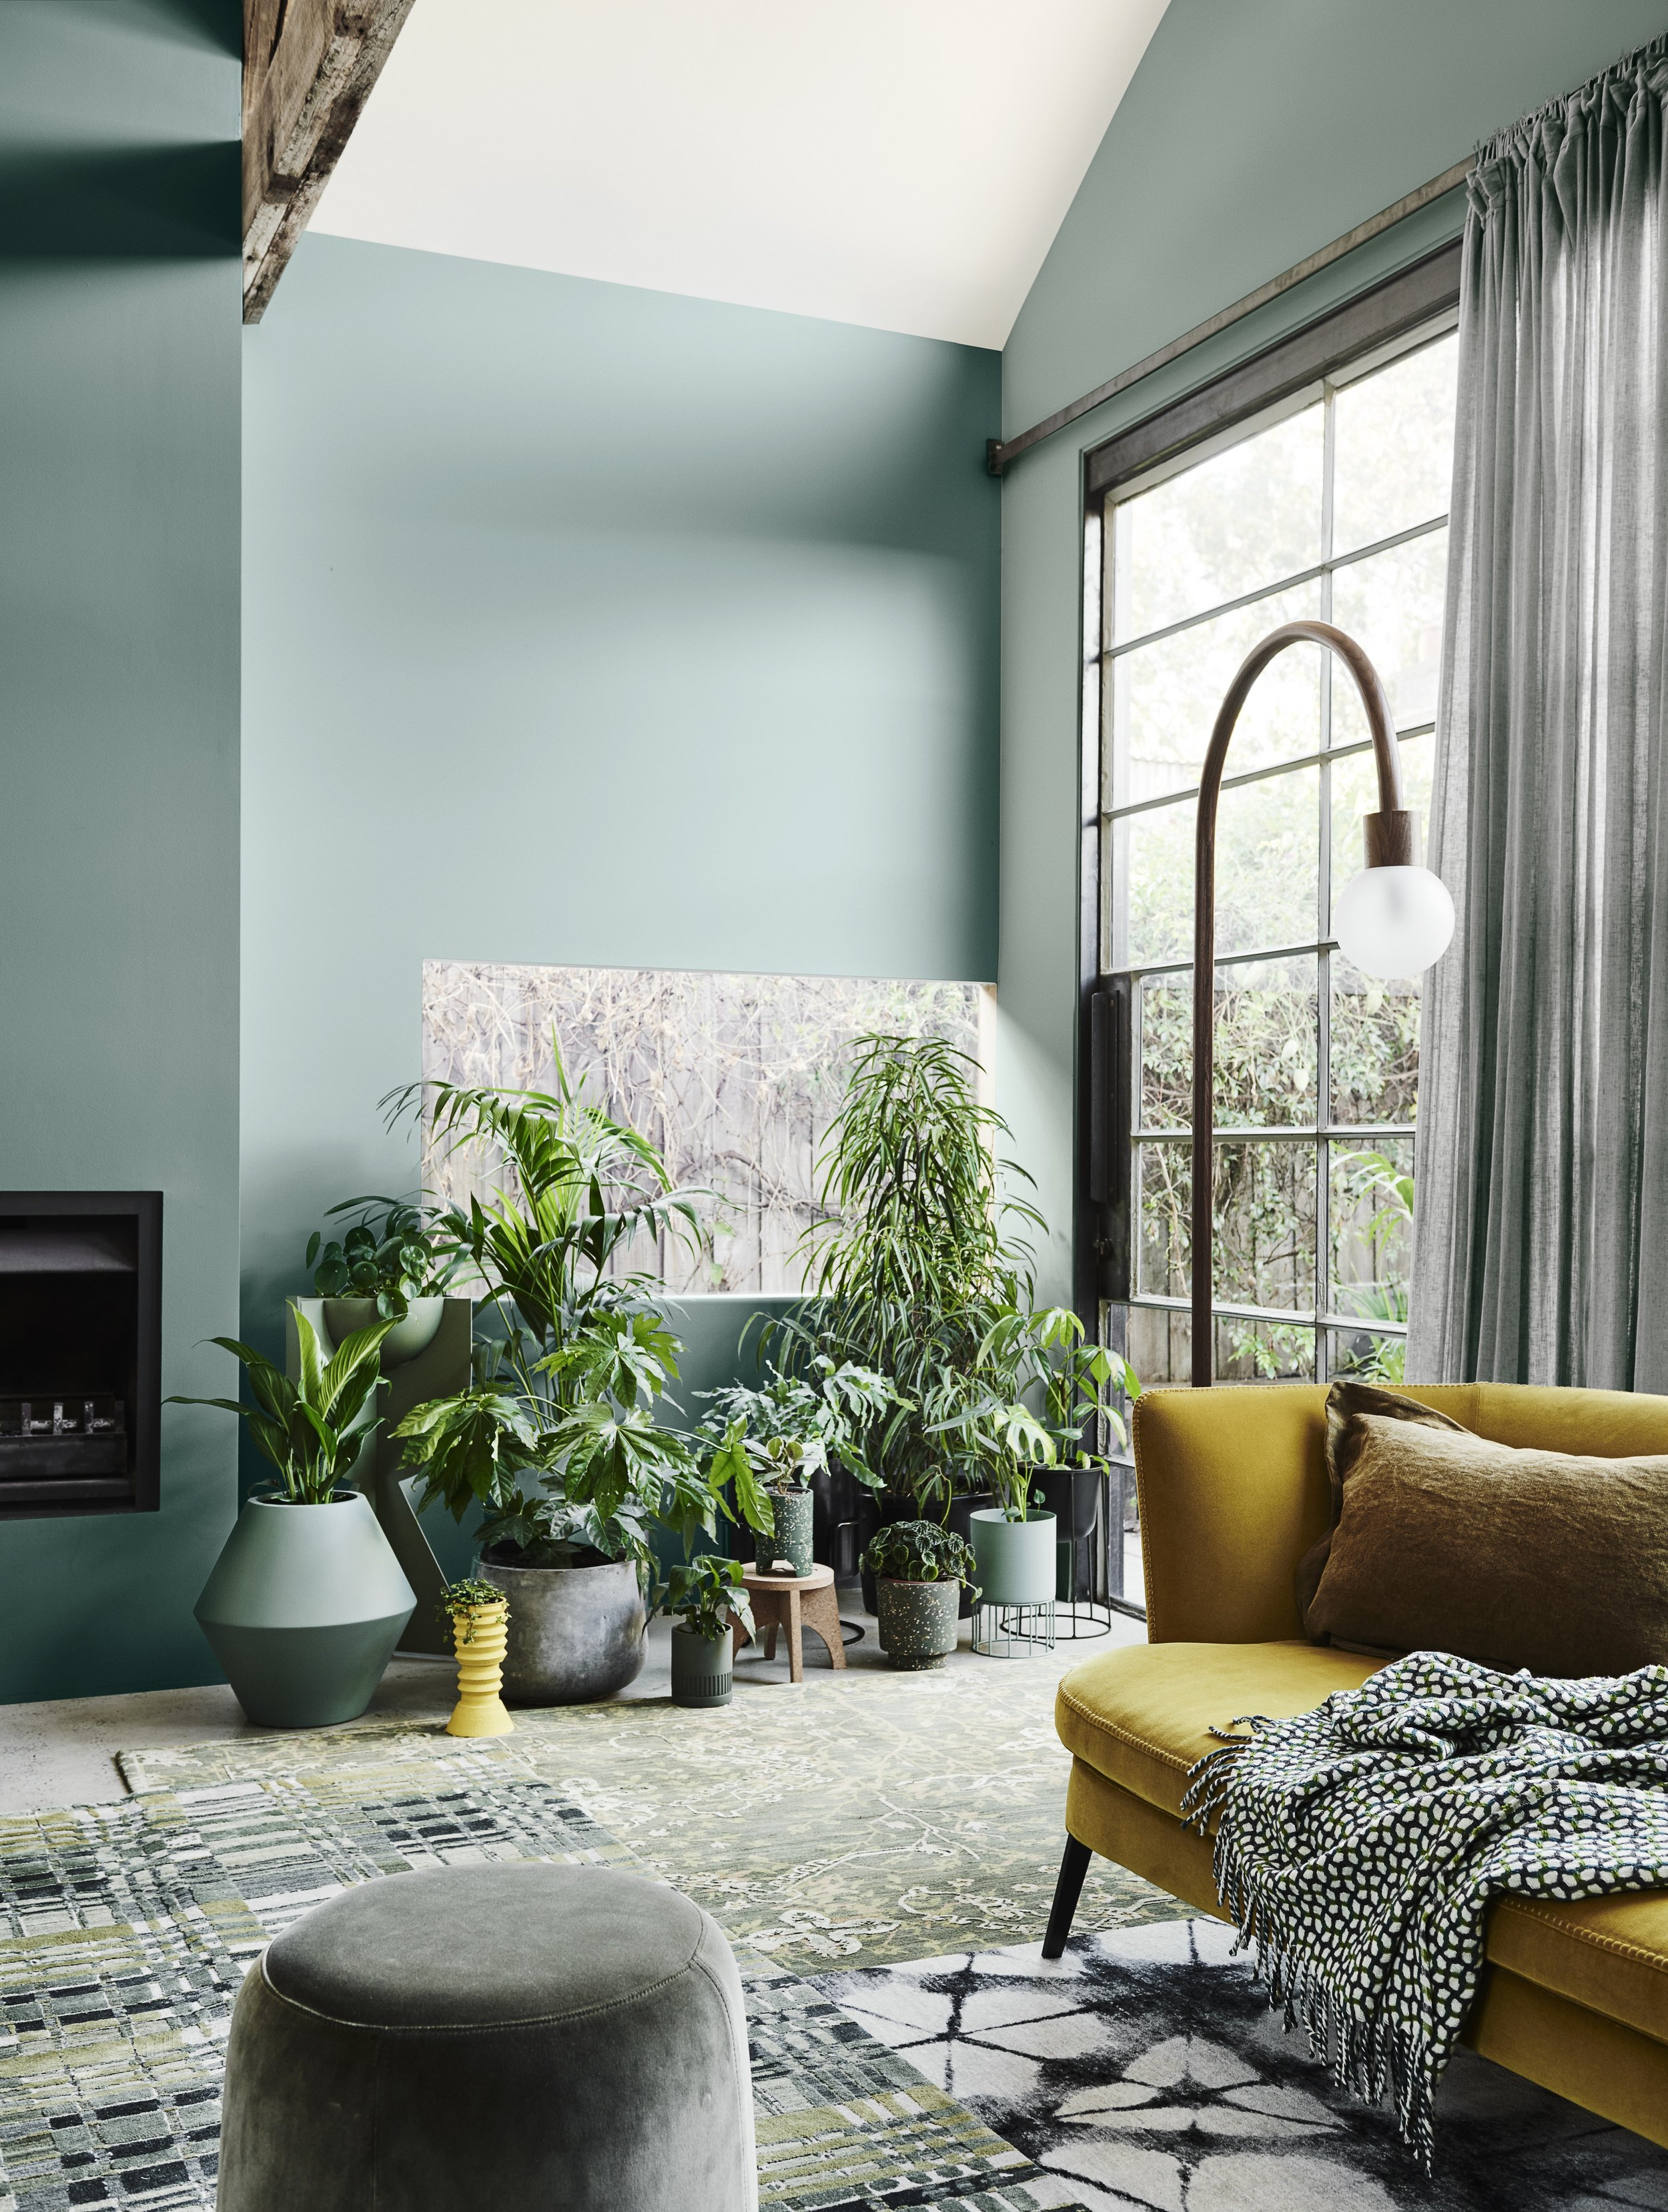 Dulux Colour Forecast 2020 – Cultivate palette. Wall in Dulux Hancock (left), wall in Pencarrow (right).